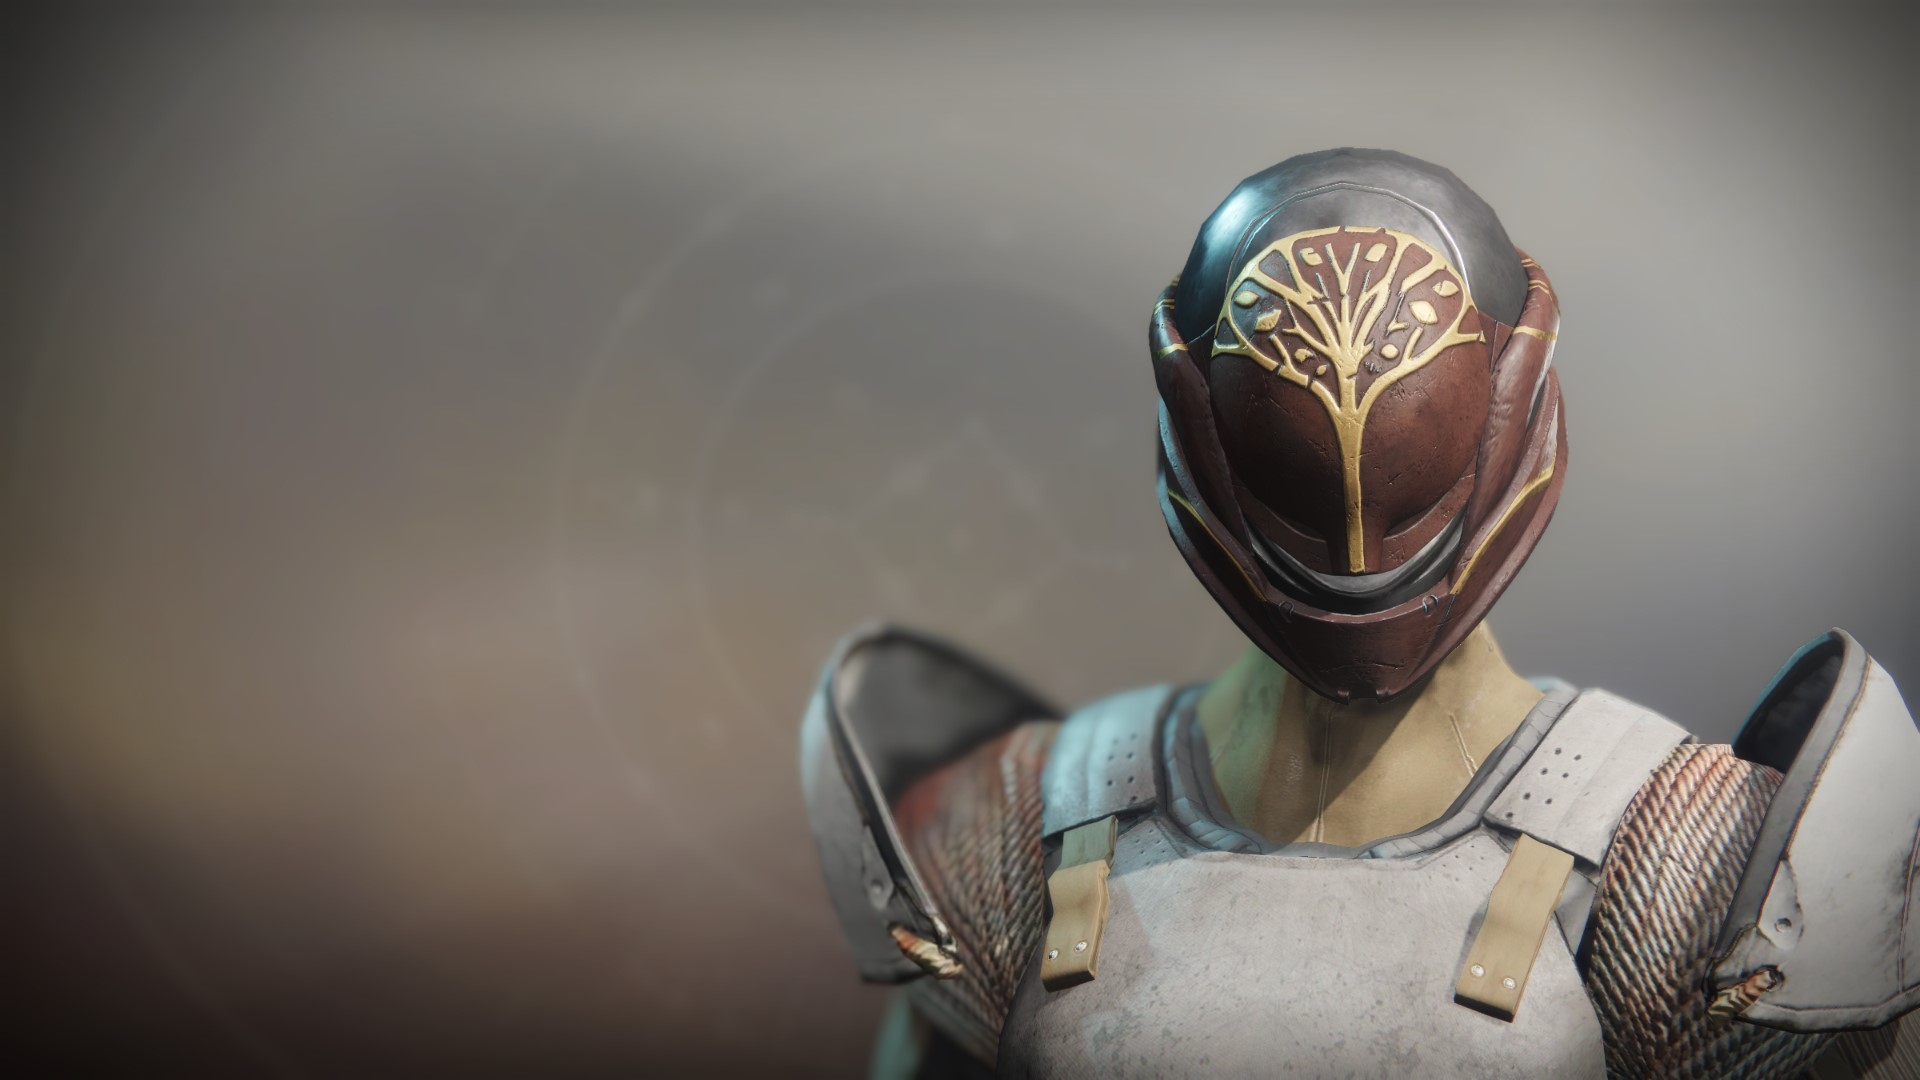 An in-game render of the Iron Fellowship Helm.